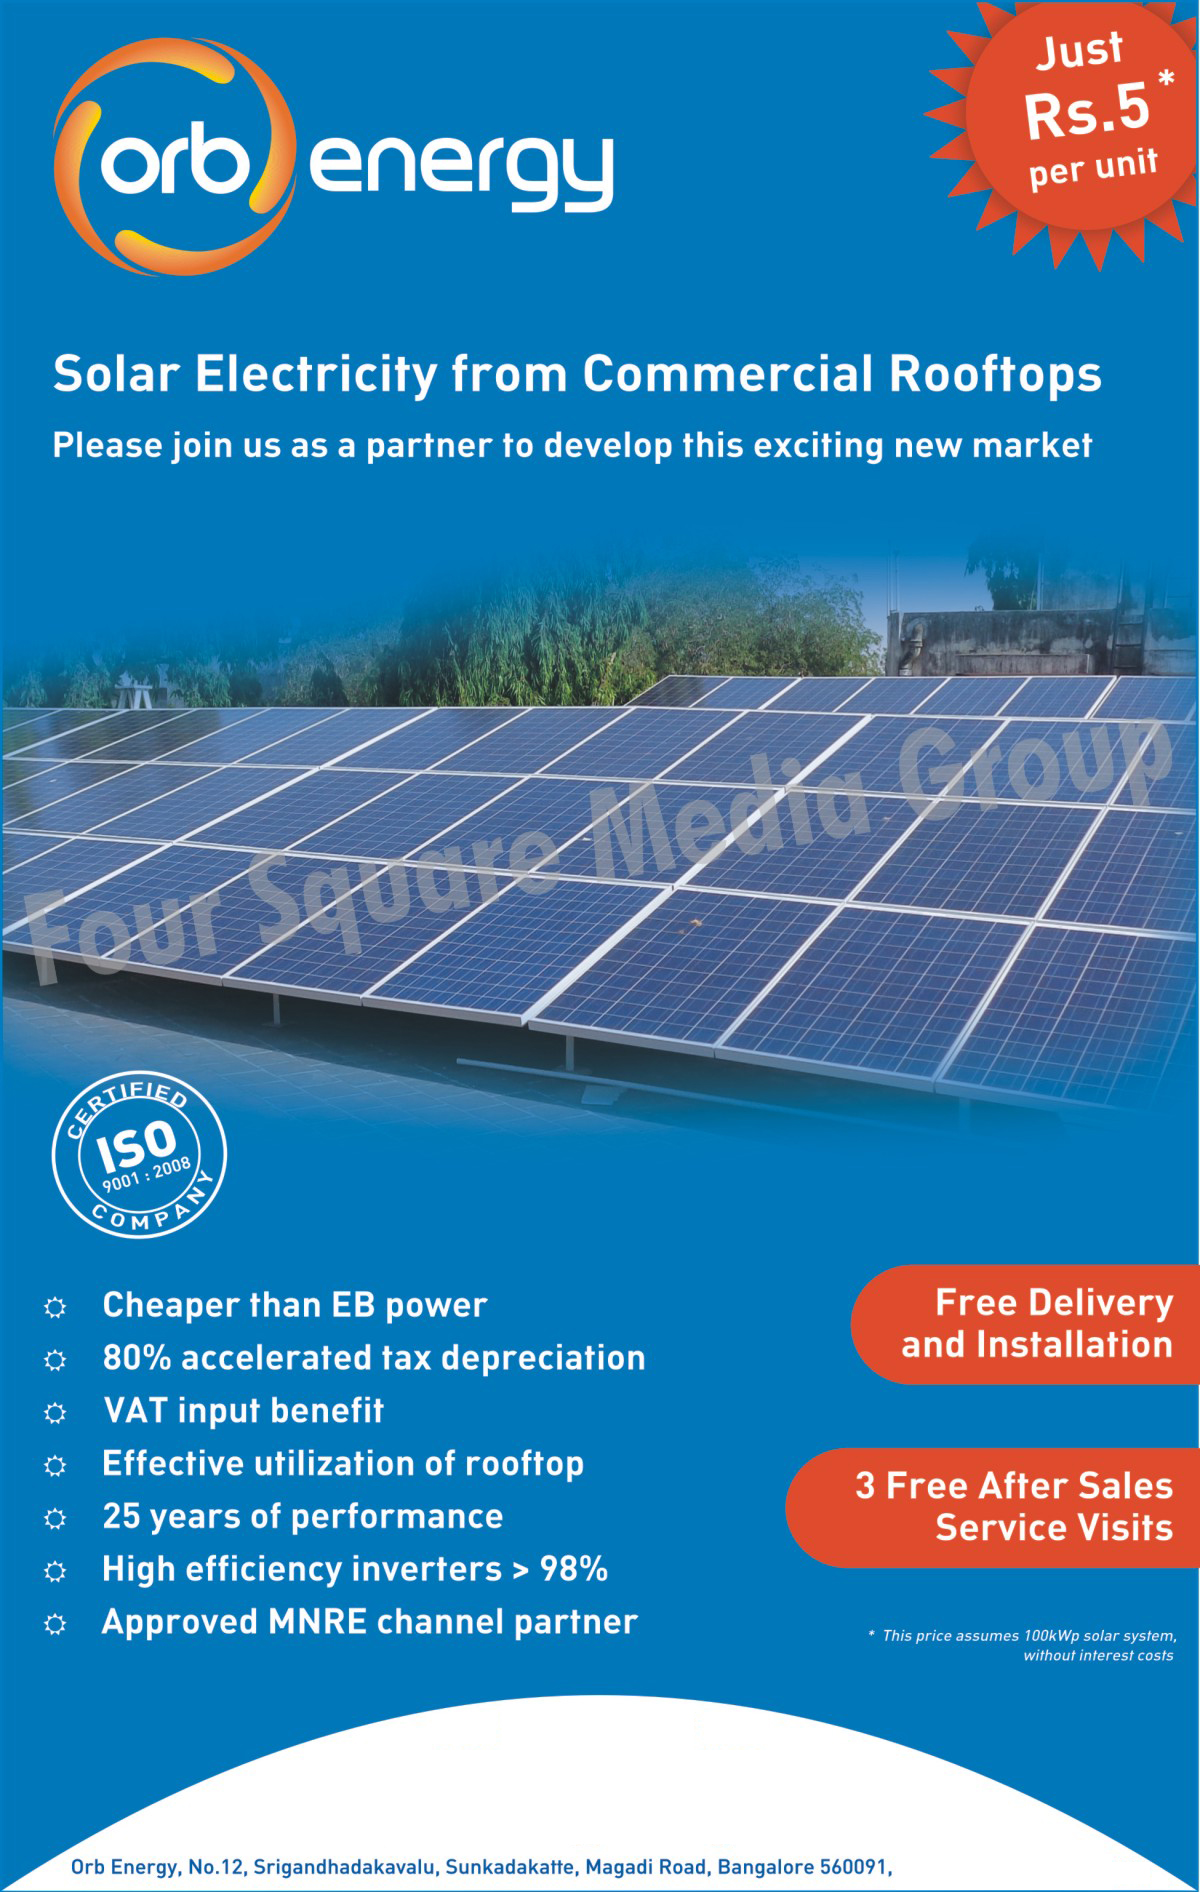 Solar Photovoltaic Systems, Solar PV Systems,Solectric Projects, Sunstream Projects, Solite Projects